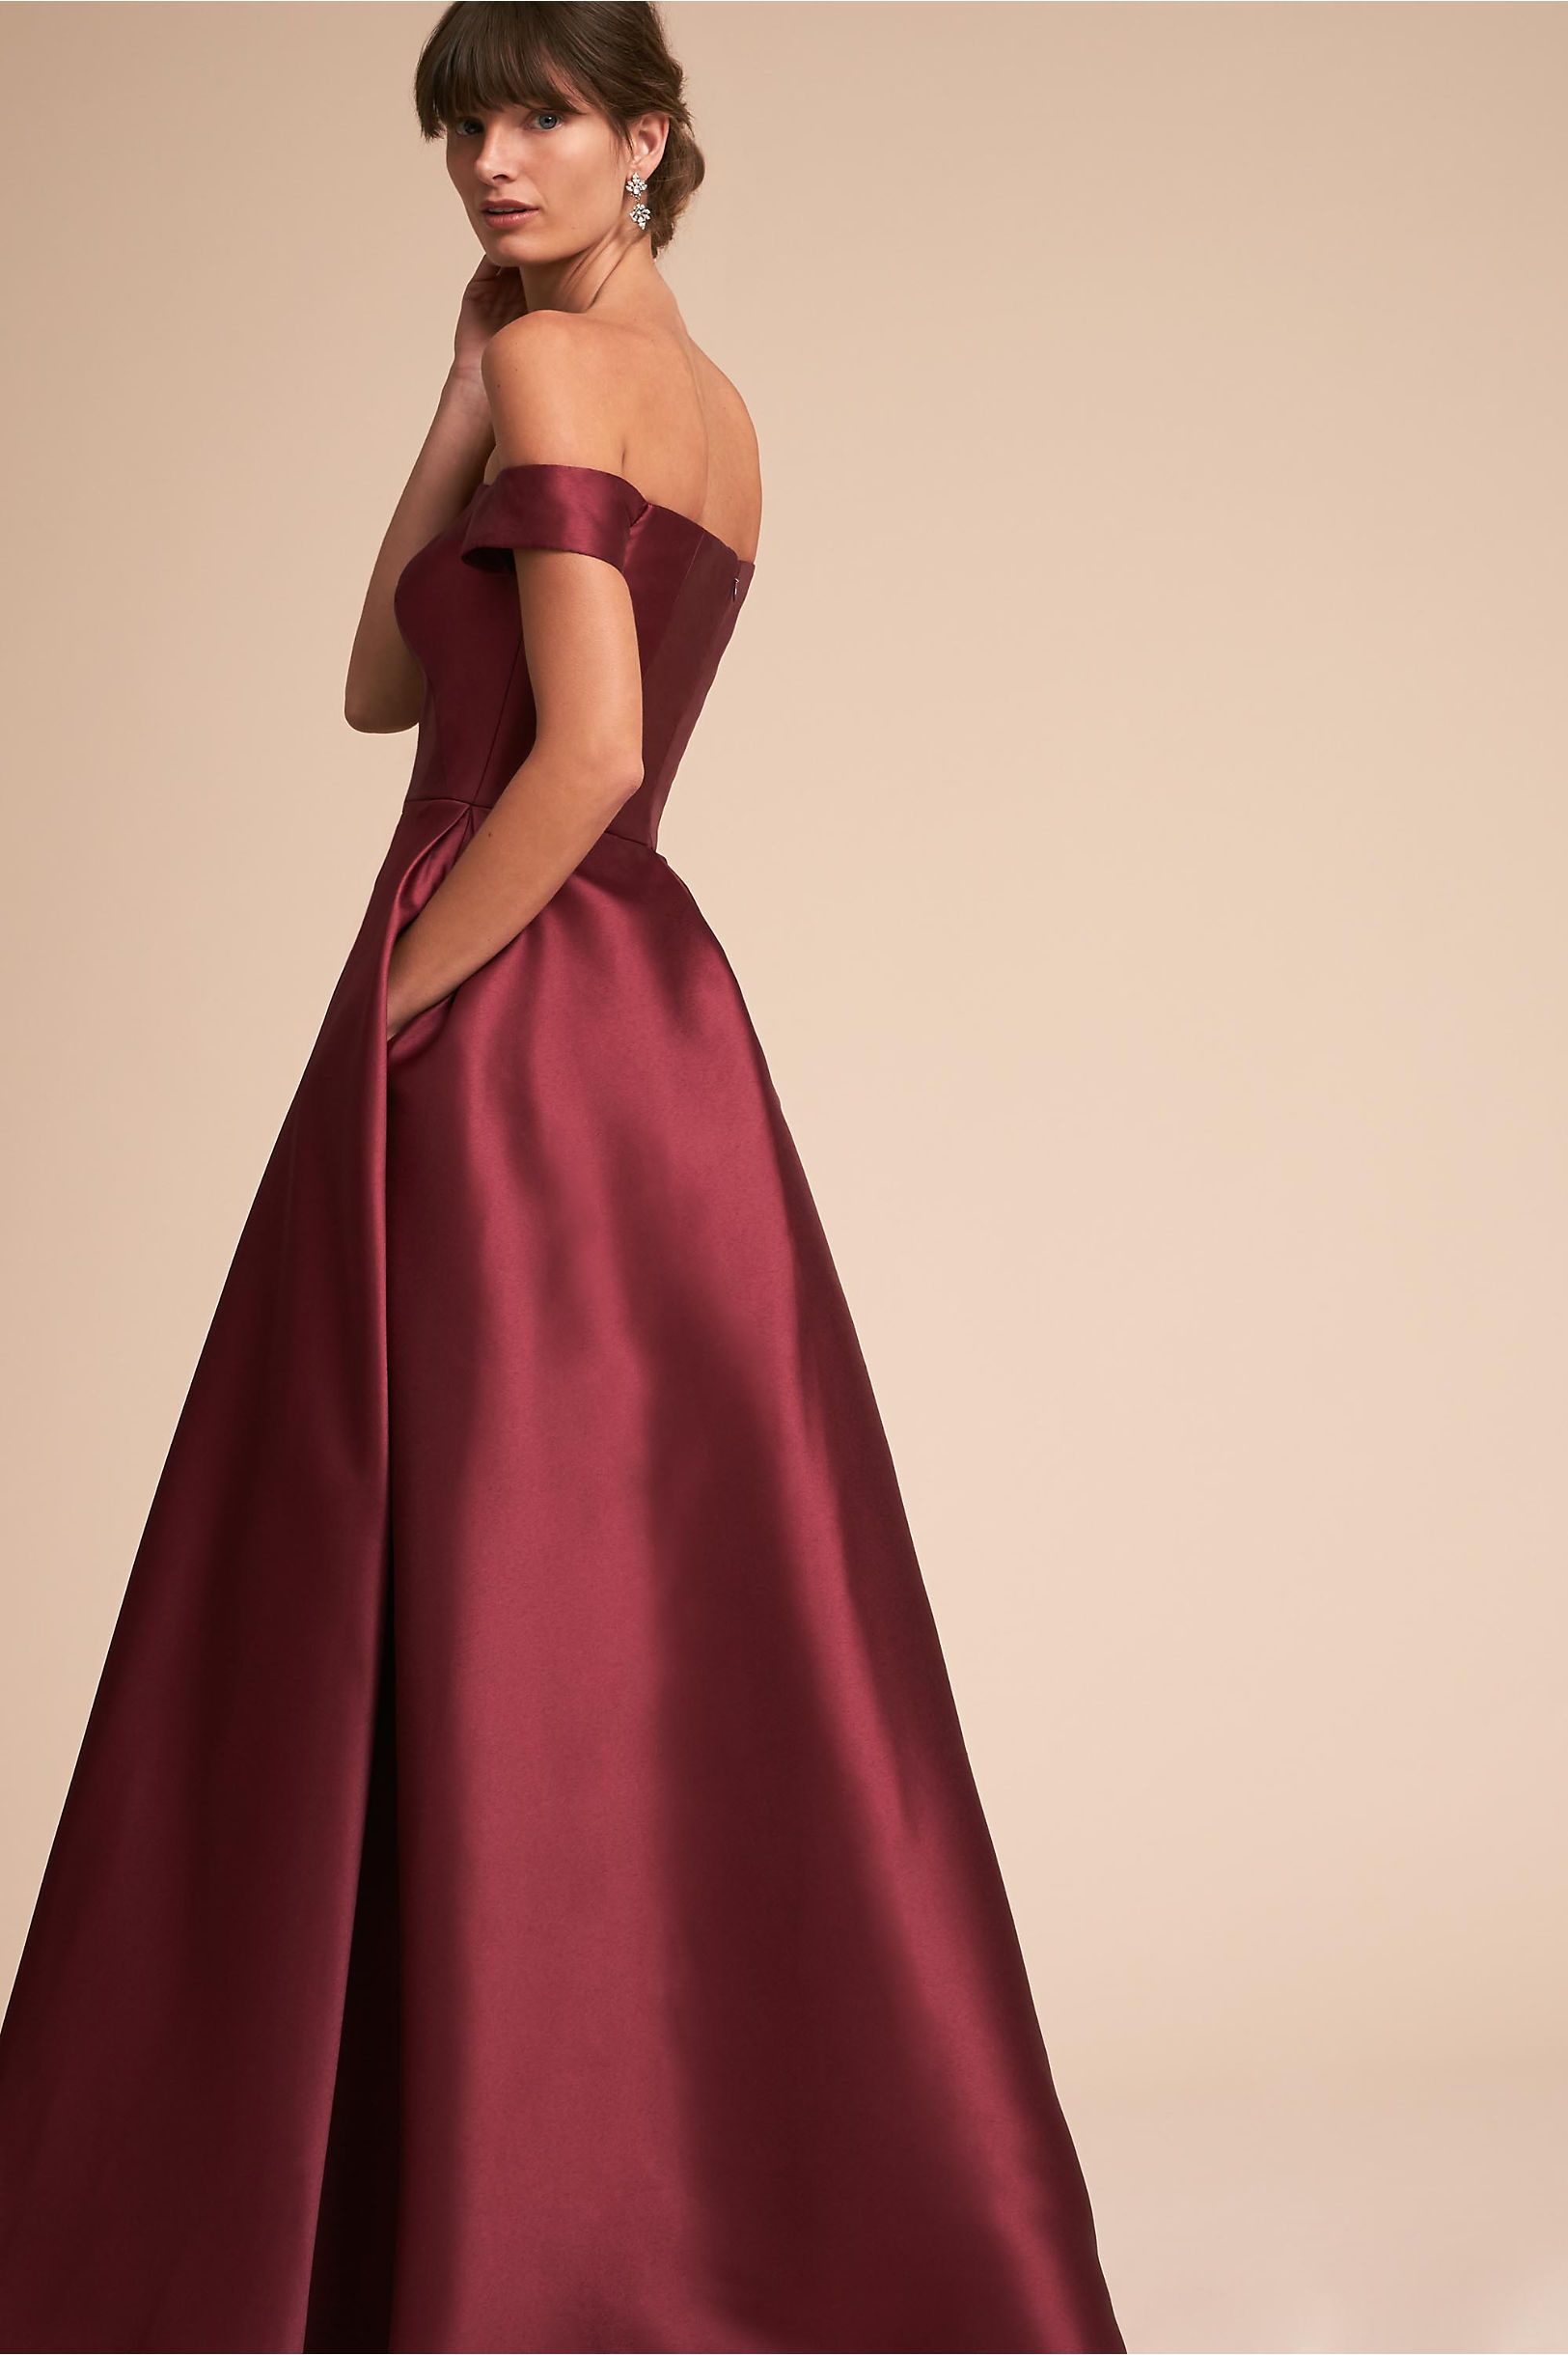 3a3fbfda9841 BHLDN Chatham Dress Raspberry in Occasion Dresses